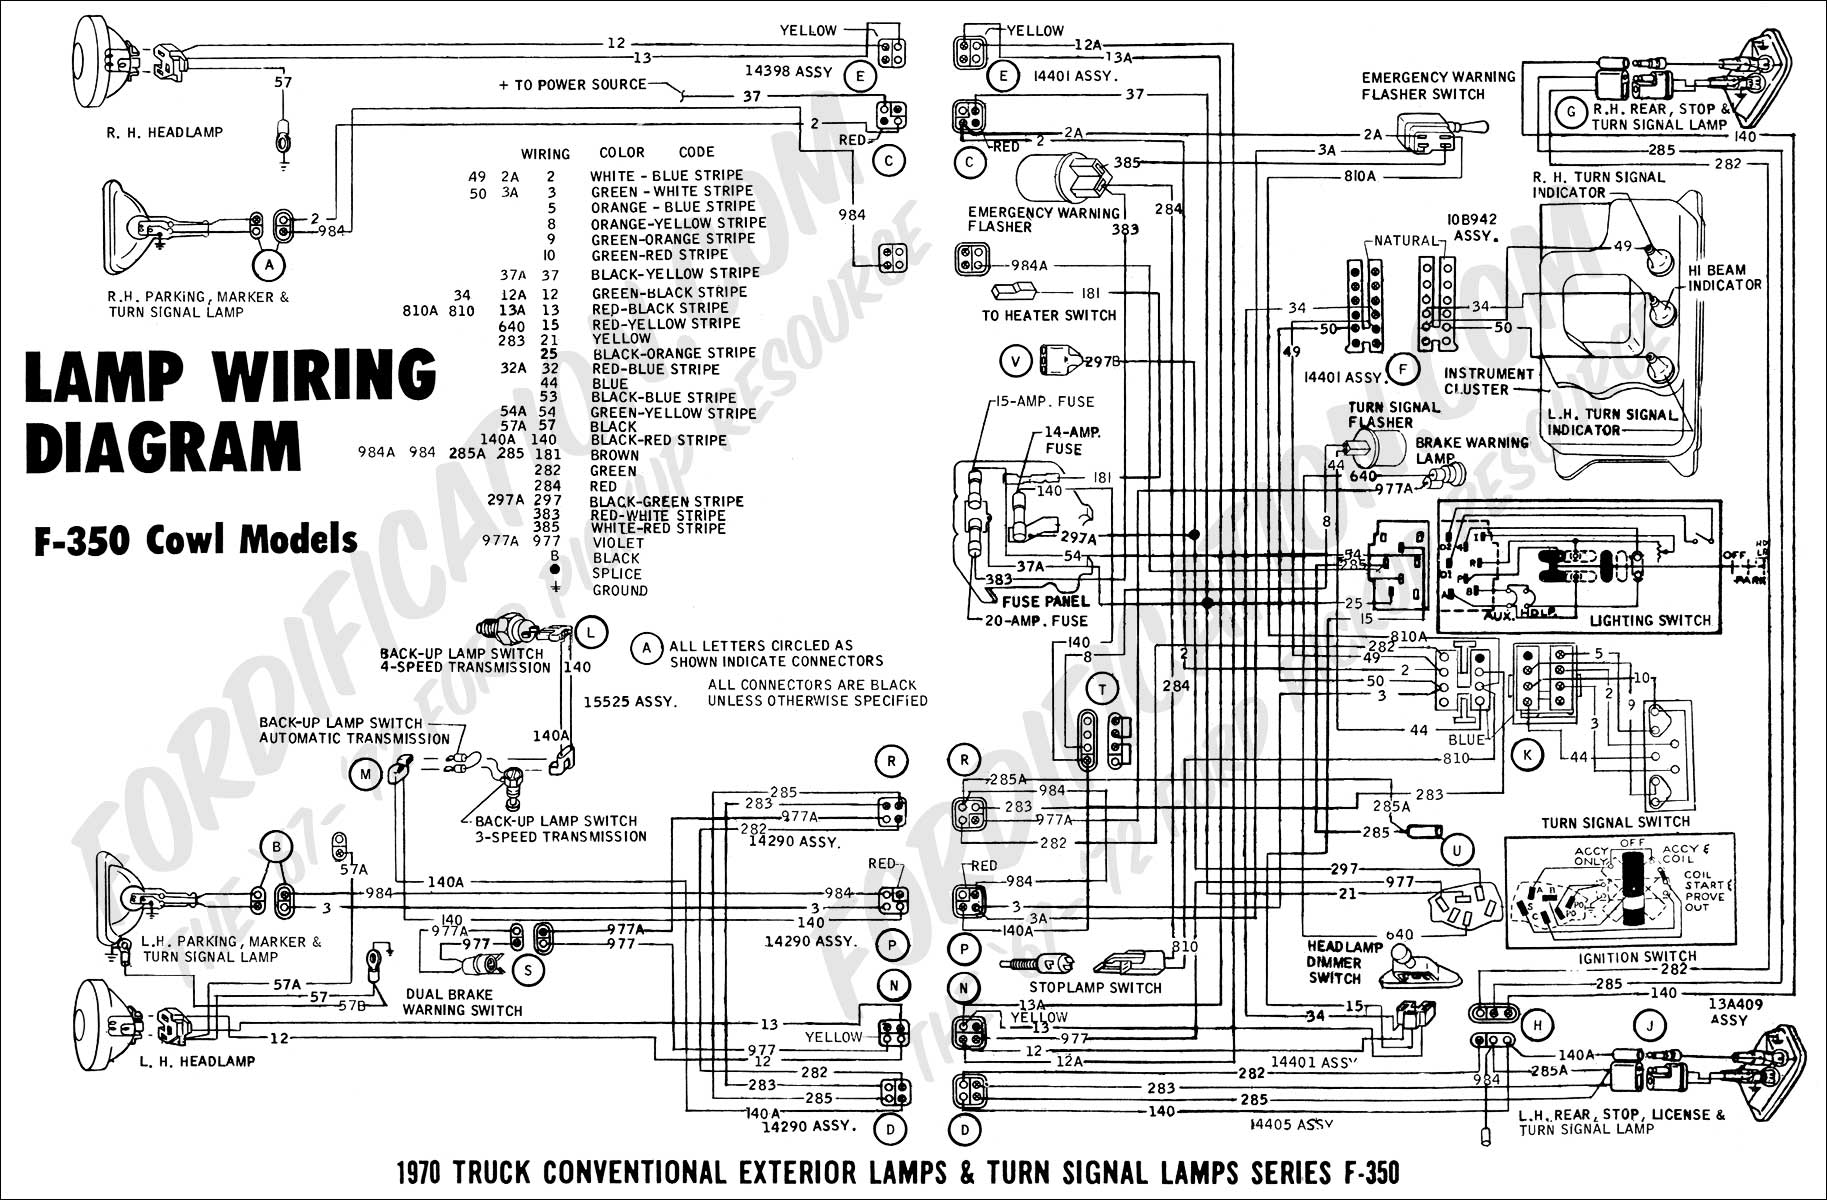 91 f350 abs wiring wiring diagram online 1999 Ford F-150 Fuse Panel 2001 ford f350 abs wiring diagram best wiring library 91 ford truck 91 f350 abs wiring